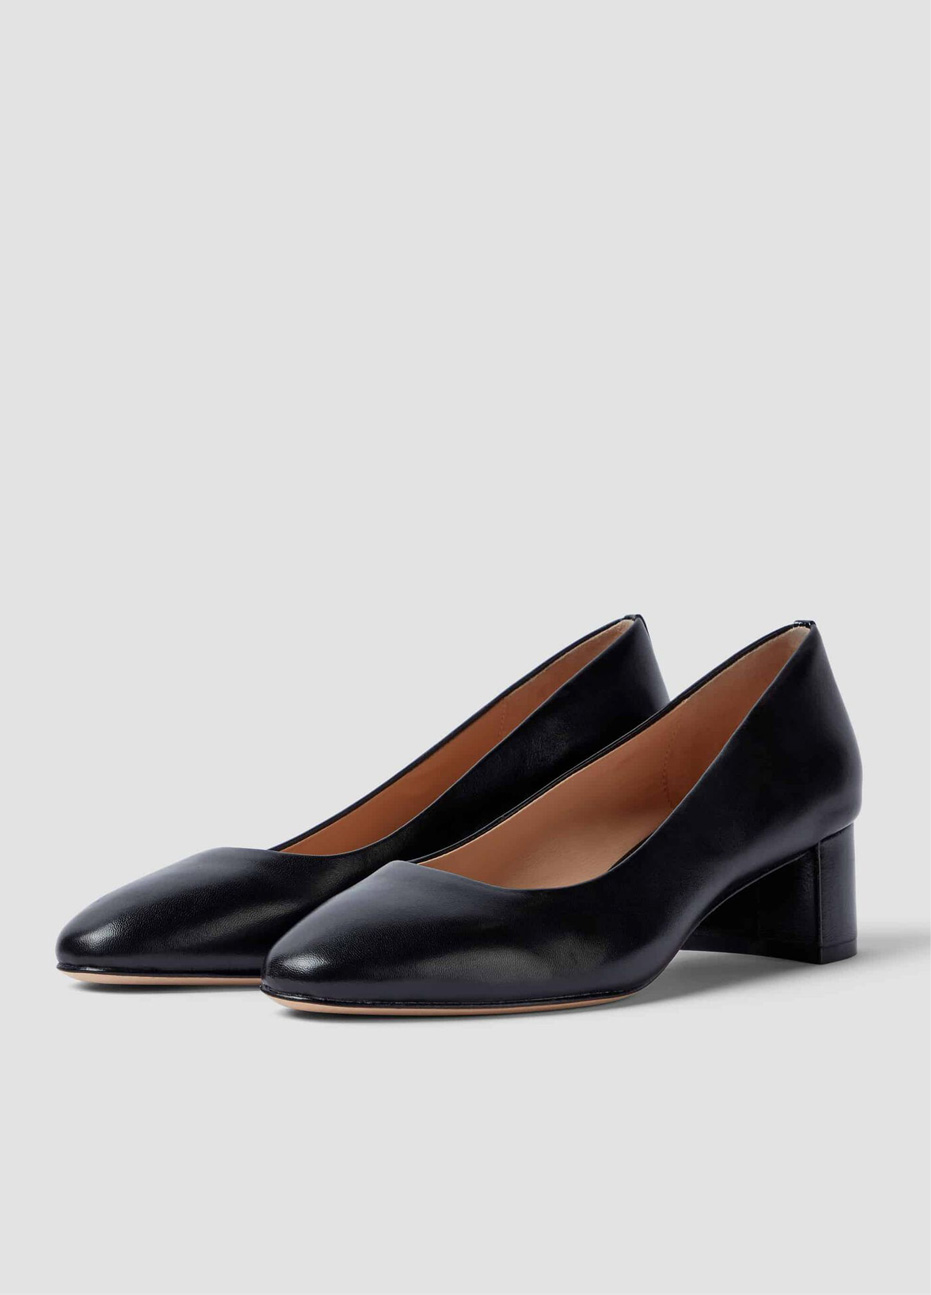 Hobbs leather block heel court shoes in black.